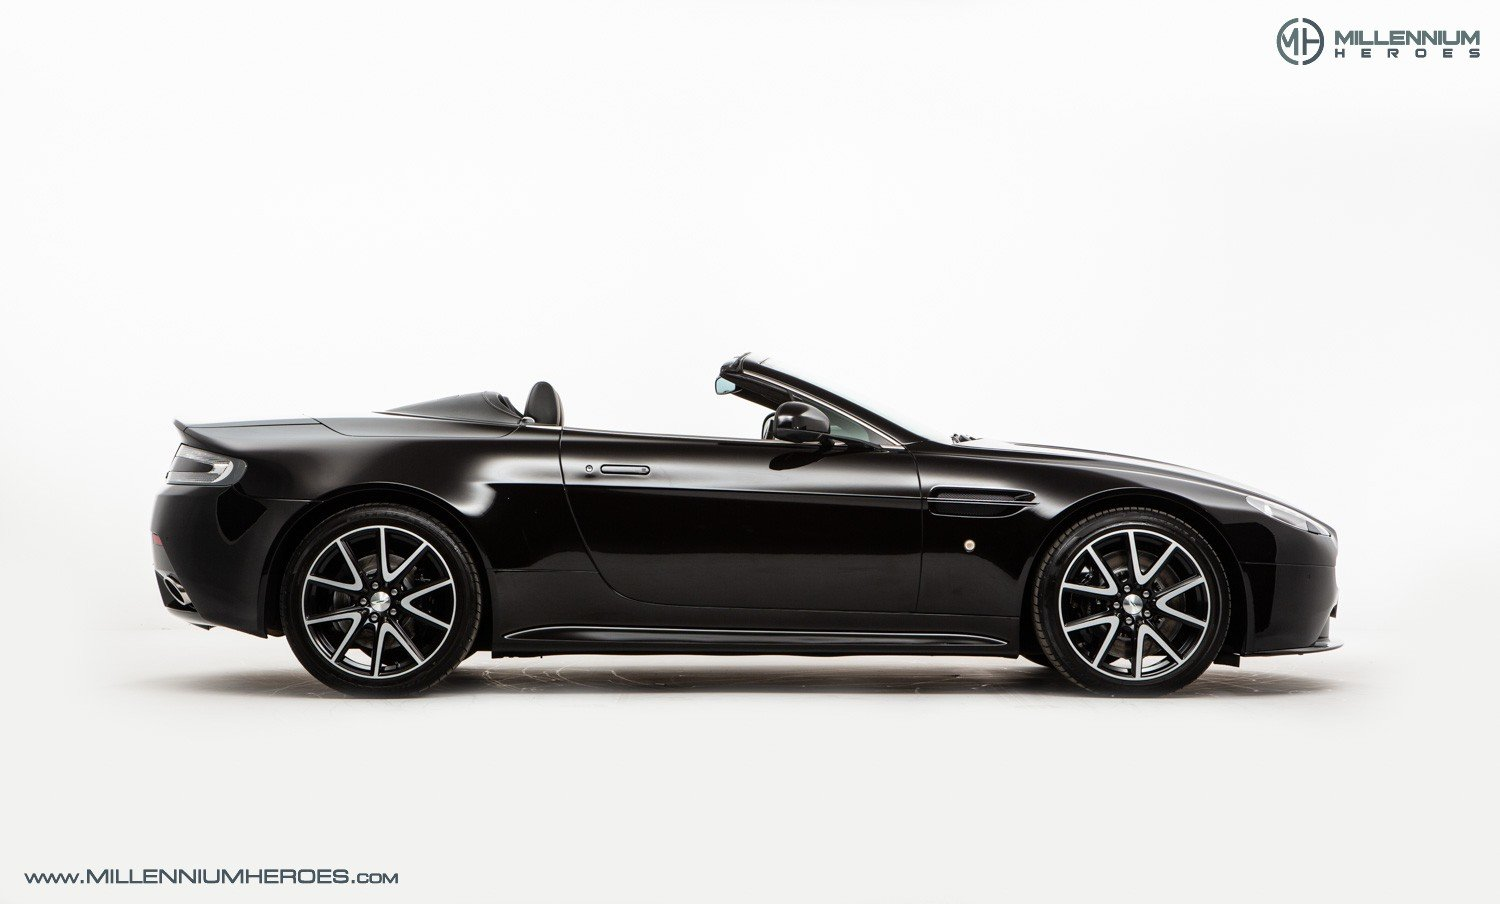 2013 ASTON MARTIN V8 VANTAGE S // AM WARRANTY // FULL AM HISTORY  For Sale (picture 8 of 23)